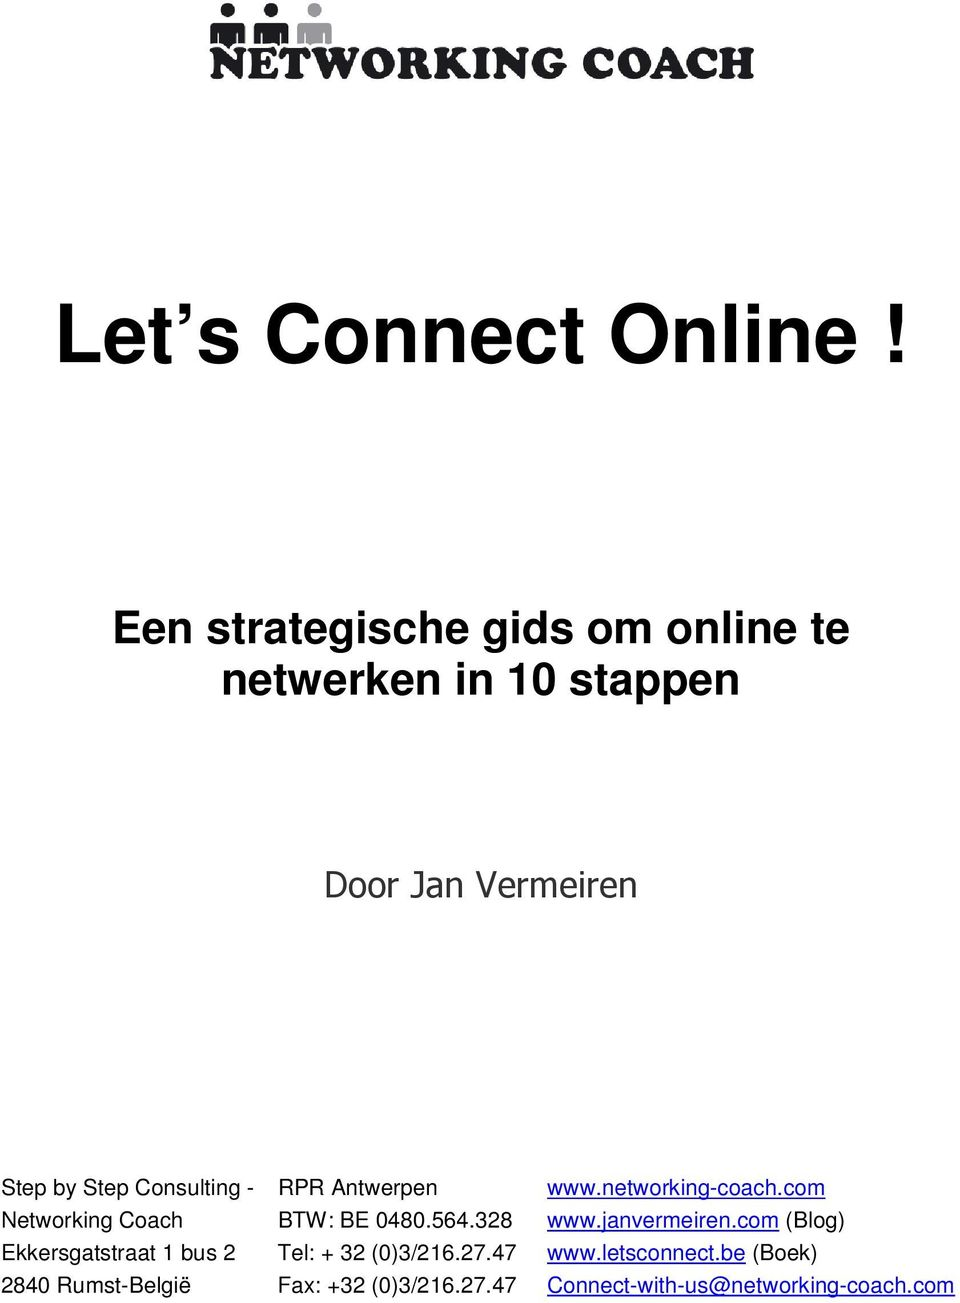 Consulting - Networking Coach RPR Antwerpen BTW: BE 0480.564.328 www.networking-coach.com www.